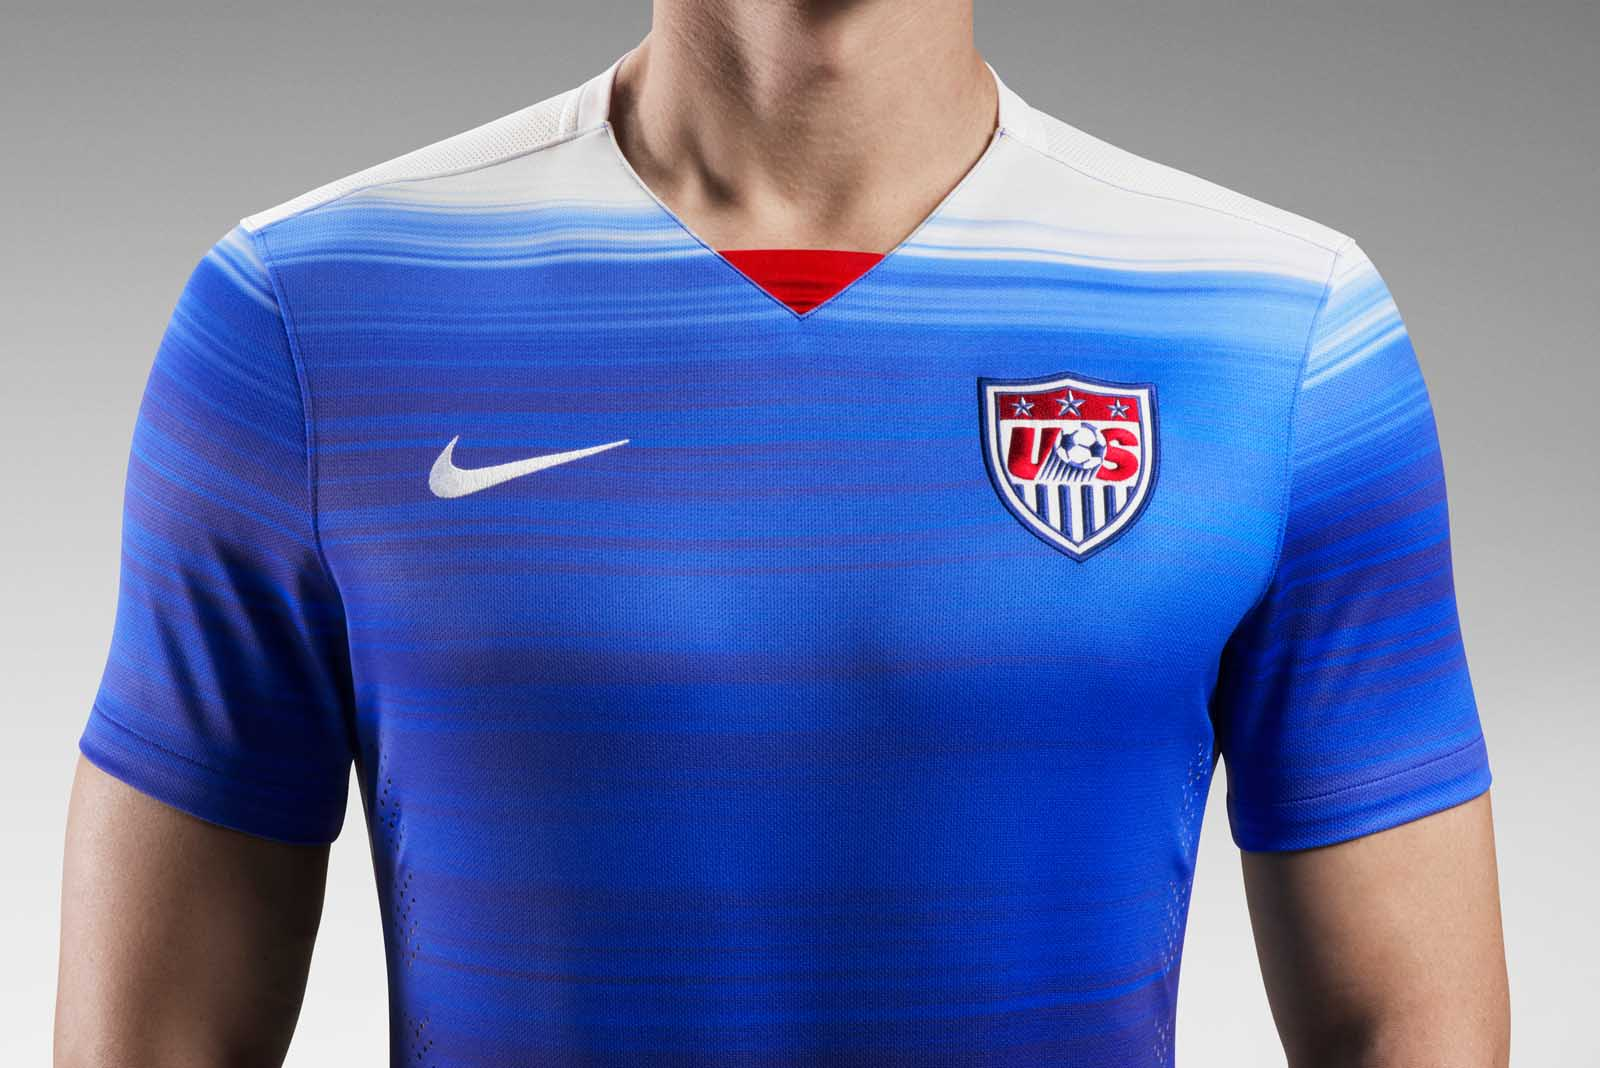 Nike-USA-2015-Away-Kit.jpg